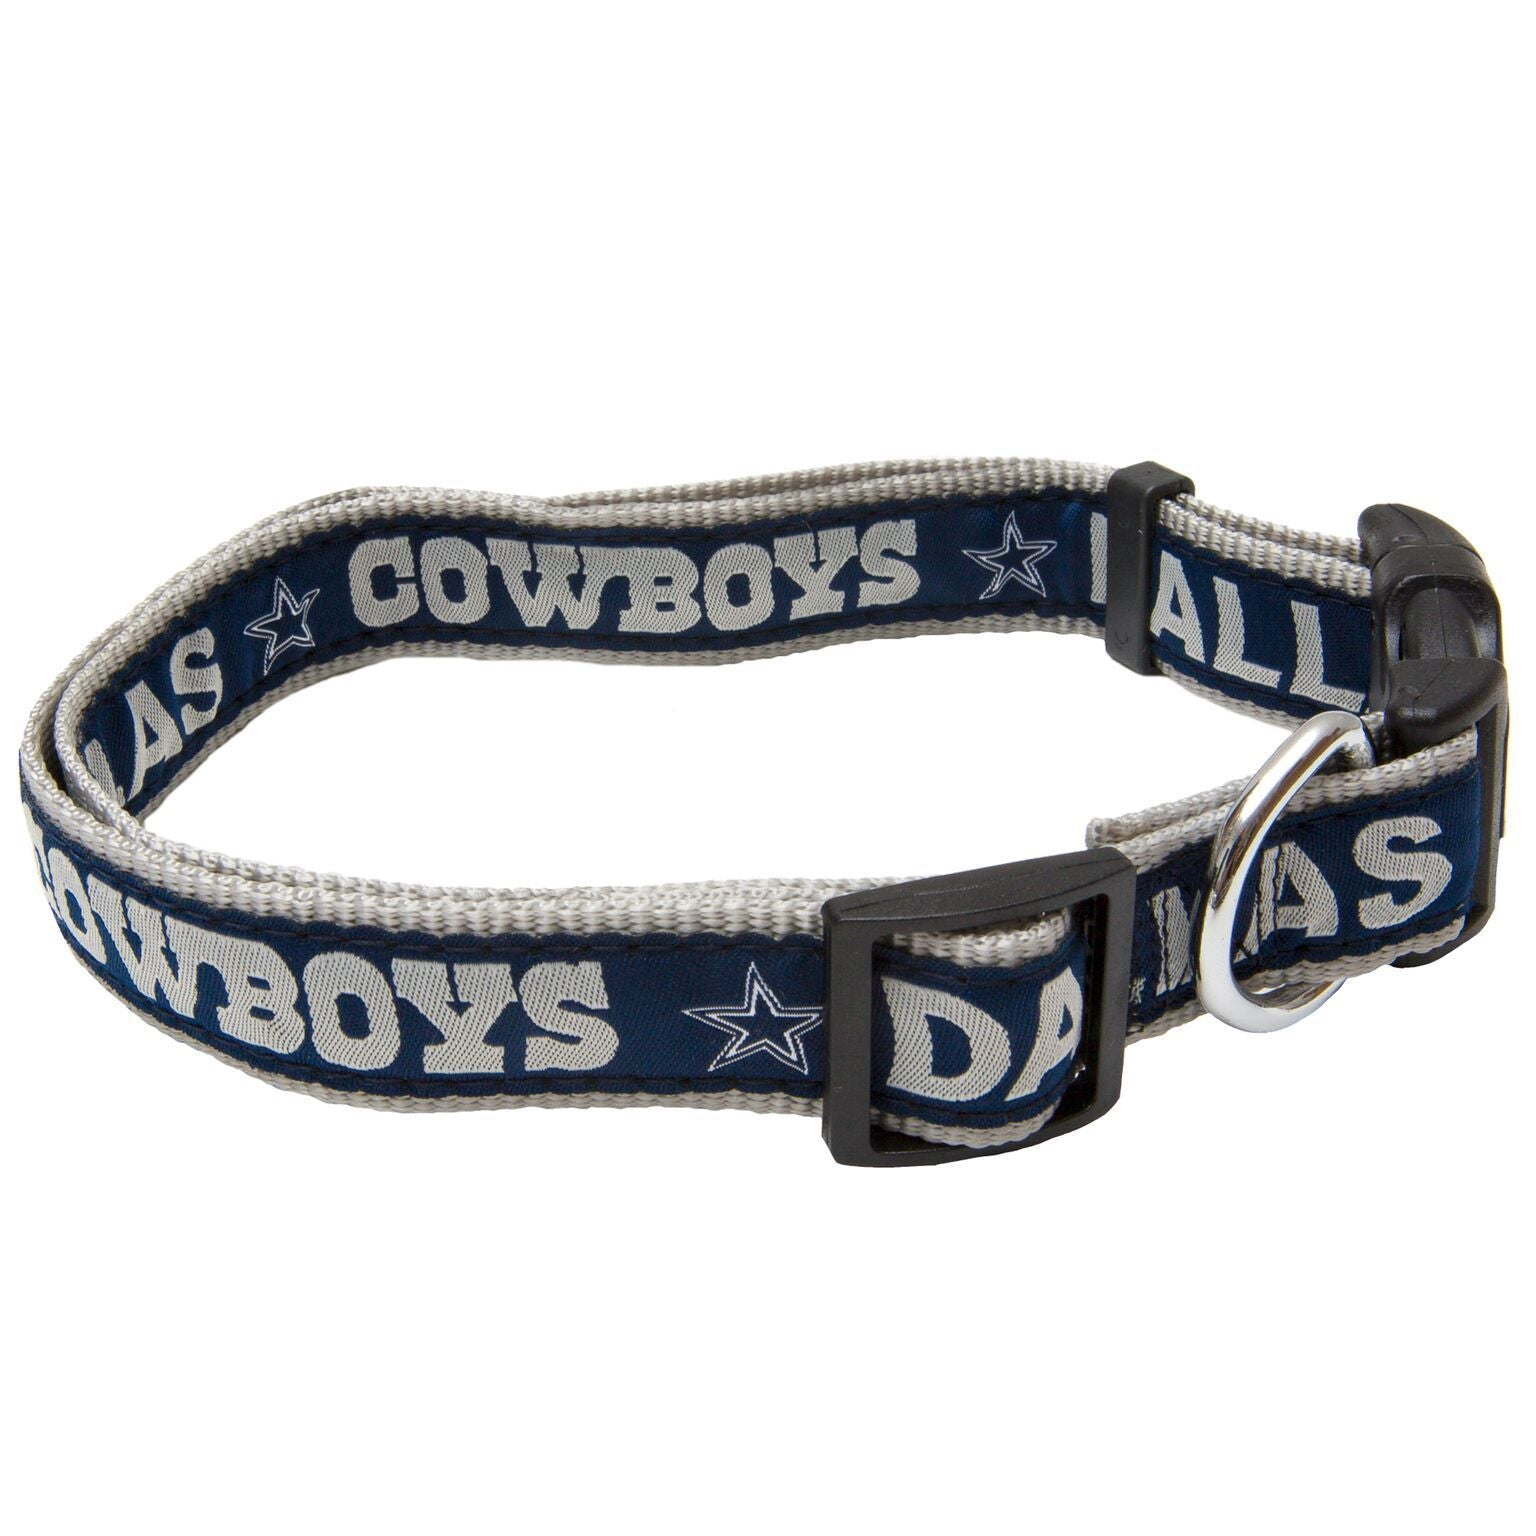 Dallas Cowboys Puppy Dog Football Jersey Cheerleading Uniform Collar Leash - Jersey Champs - Custom Basketball, Baseball, Football & Hockey Jerseys